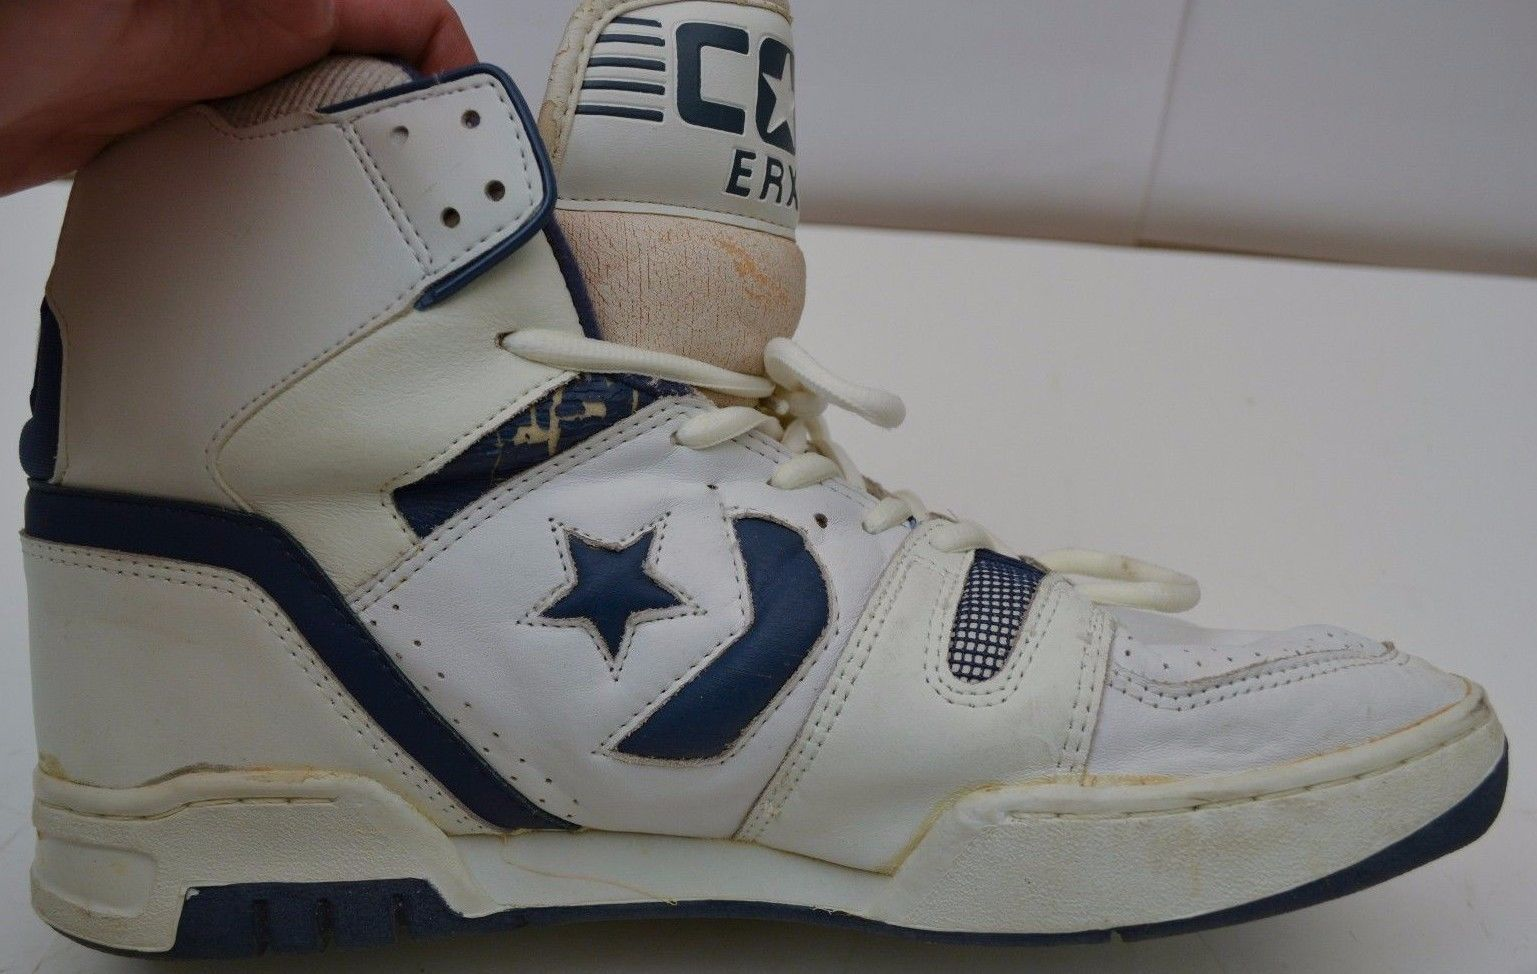 best website 18f82 a2338 ... Vintage Converse Cons ERX 200 Mens Size 13 5 US Hightops Made in Korea  Shoes NBA ...